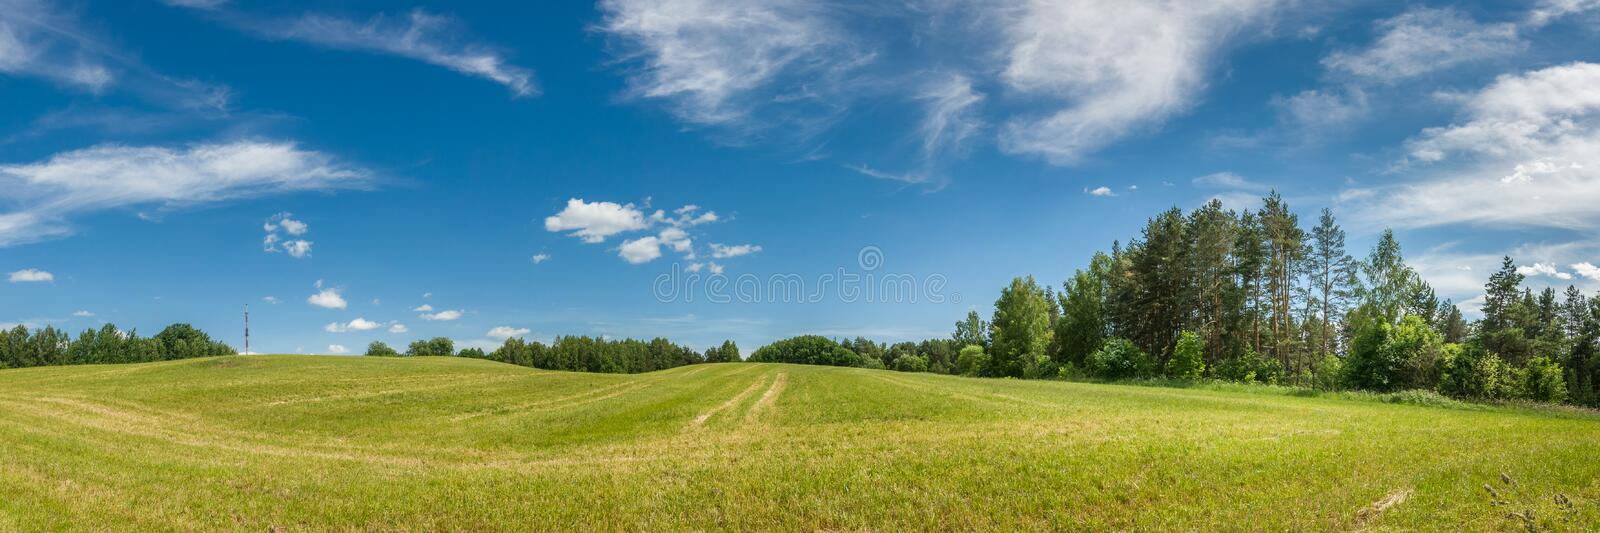 summer agricultural landscape. panoramic view of a hilly field under a blue cloudy sky royalty free stock image